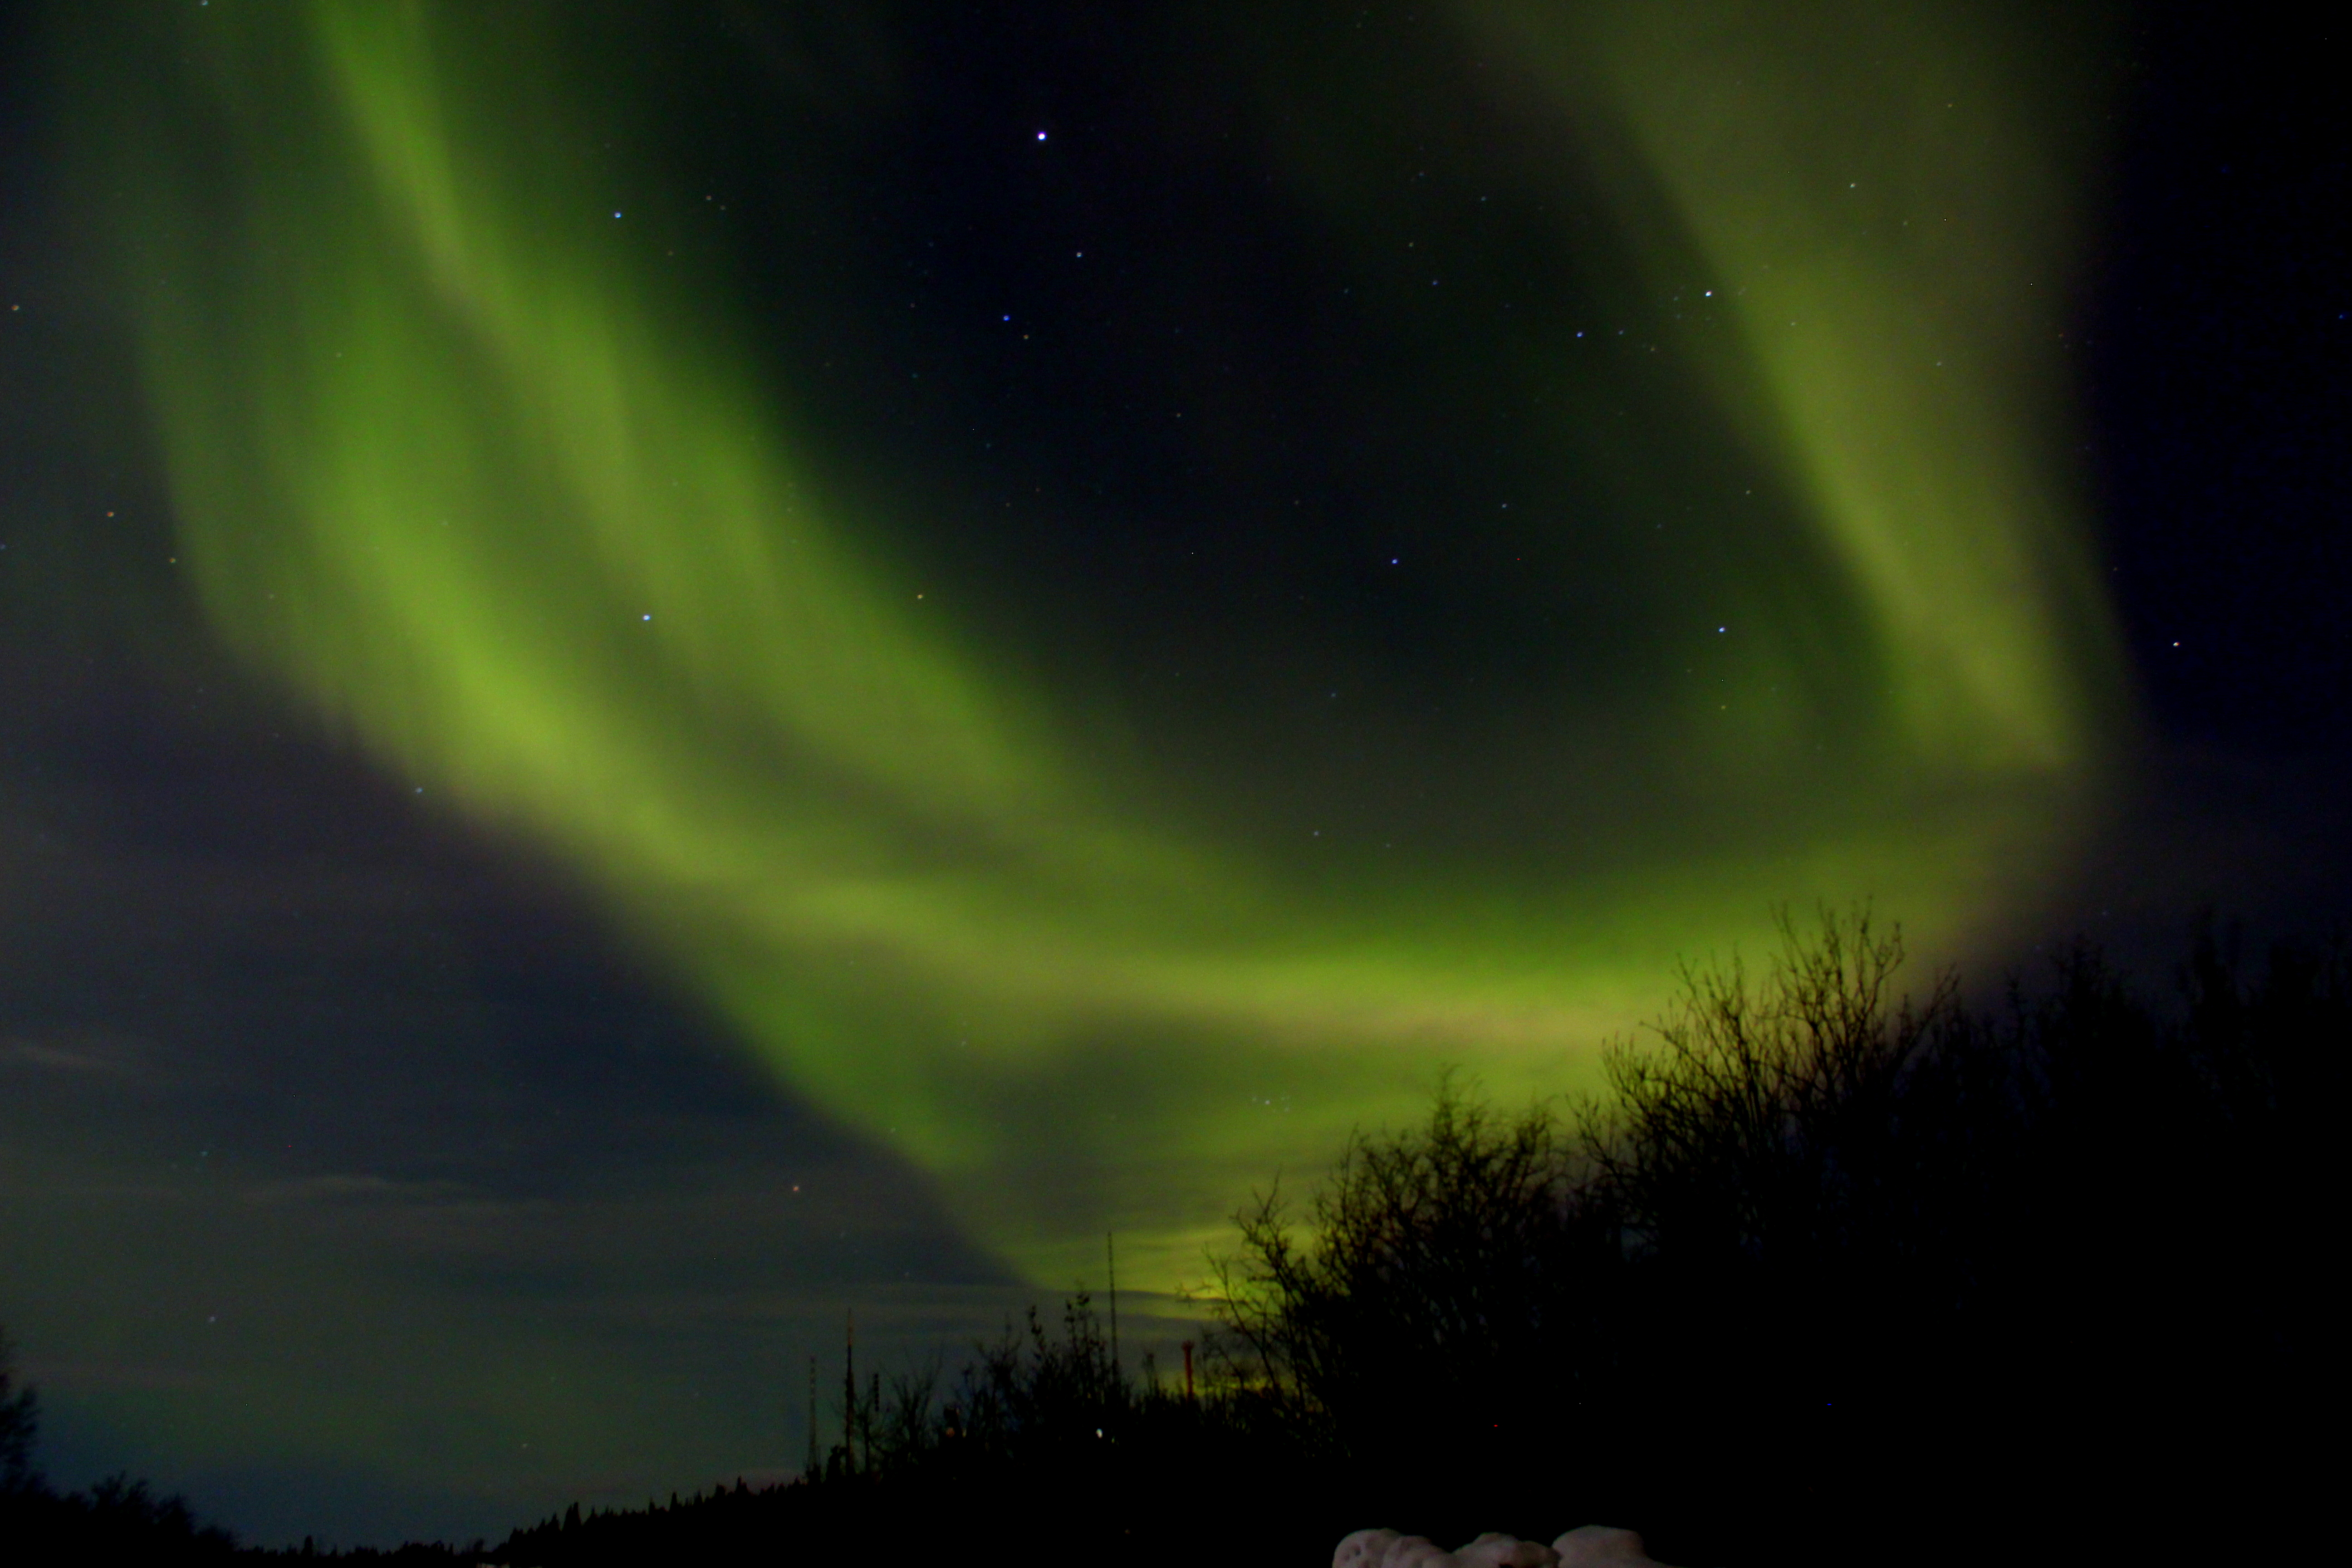 The Best Place And Time To See The Northern Lights